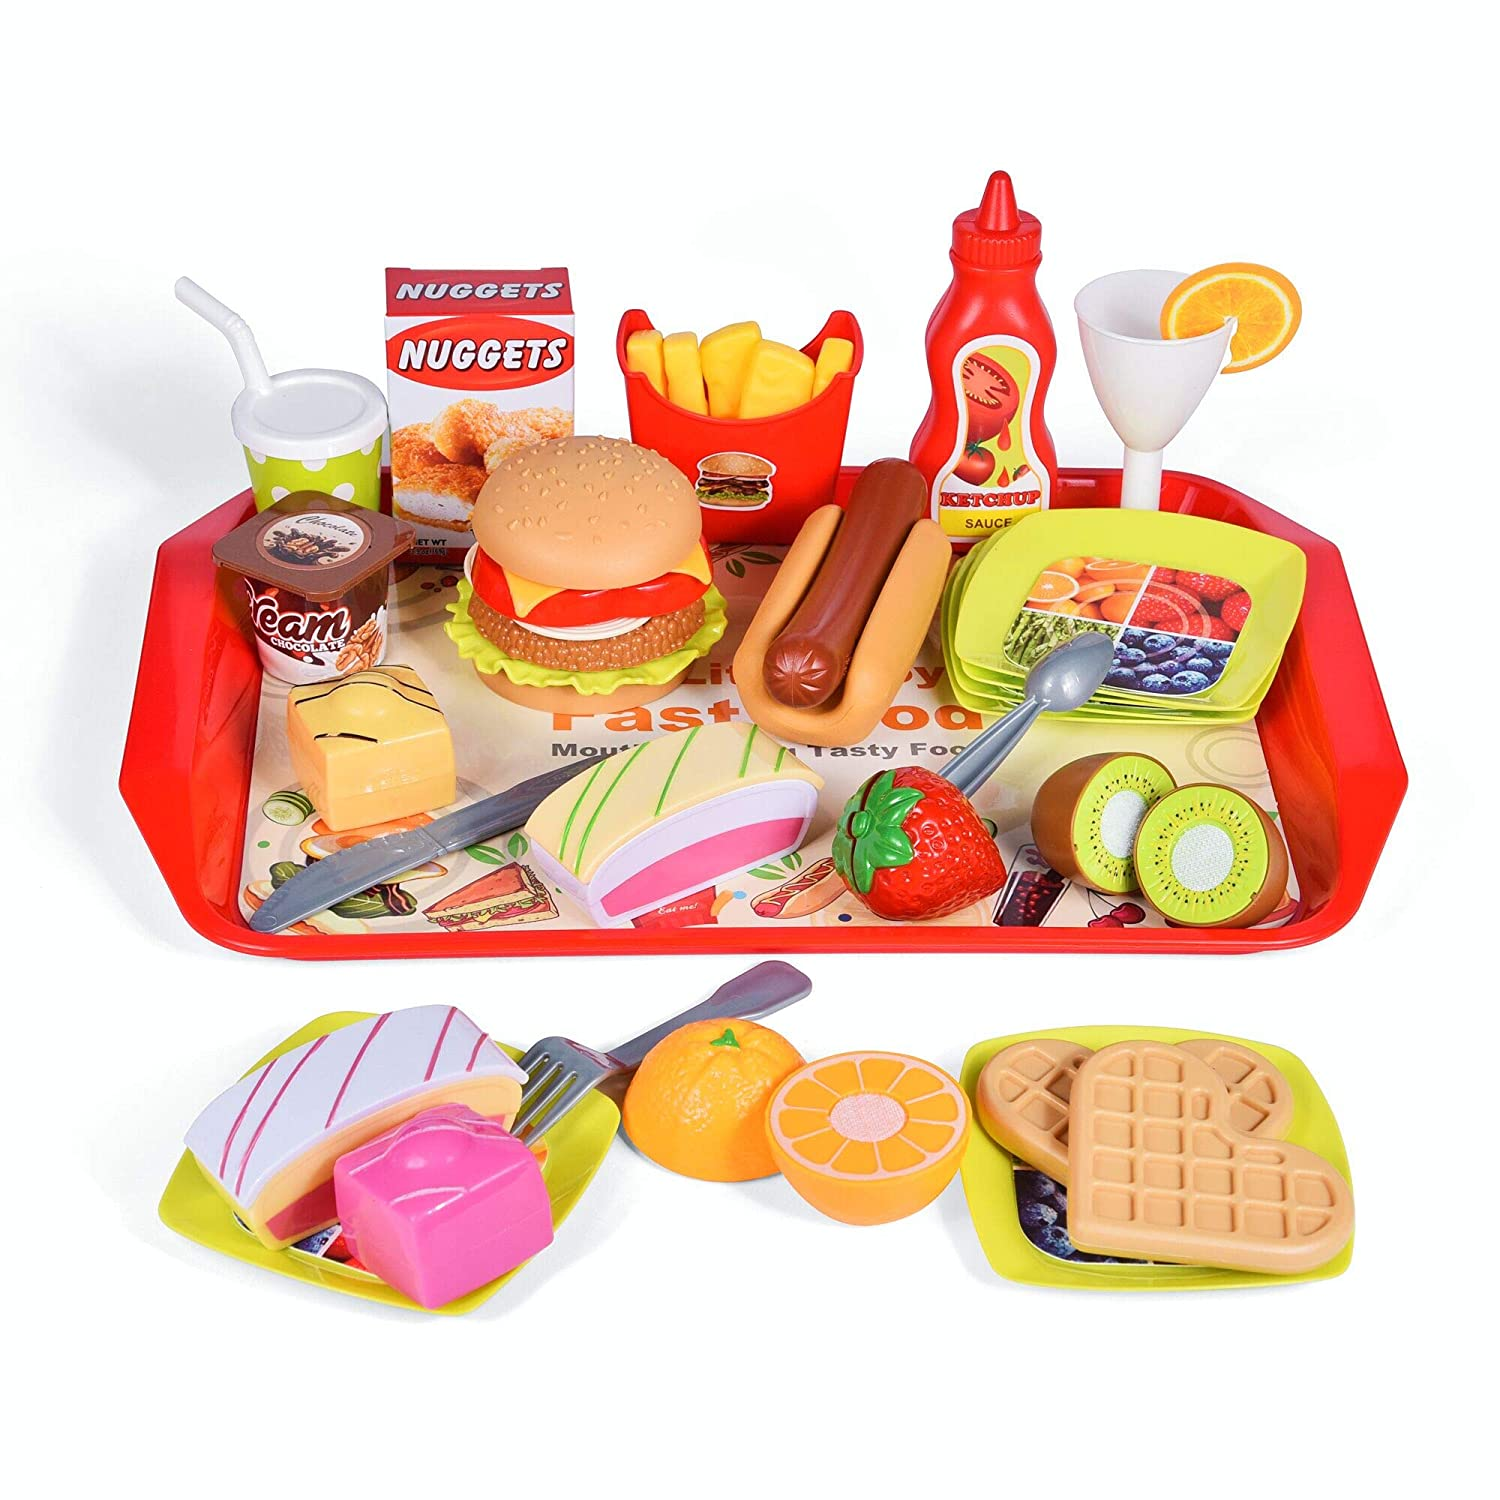 Kids Kitchen Accessories >> Details About Fun Little Toys 40 Pcs Play Food For Kids Kitchen Play Kitchen Accessories Toy